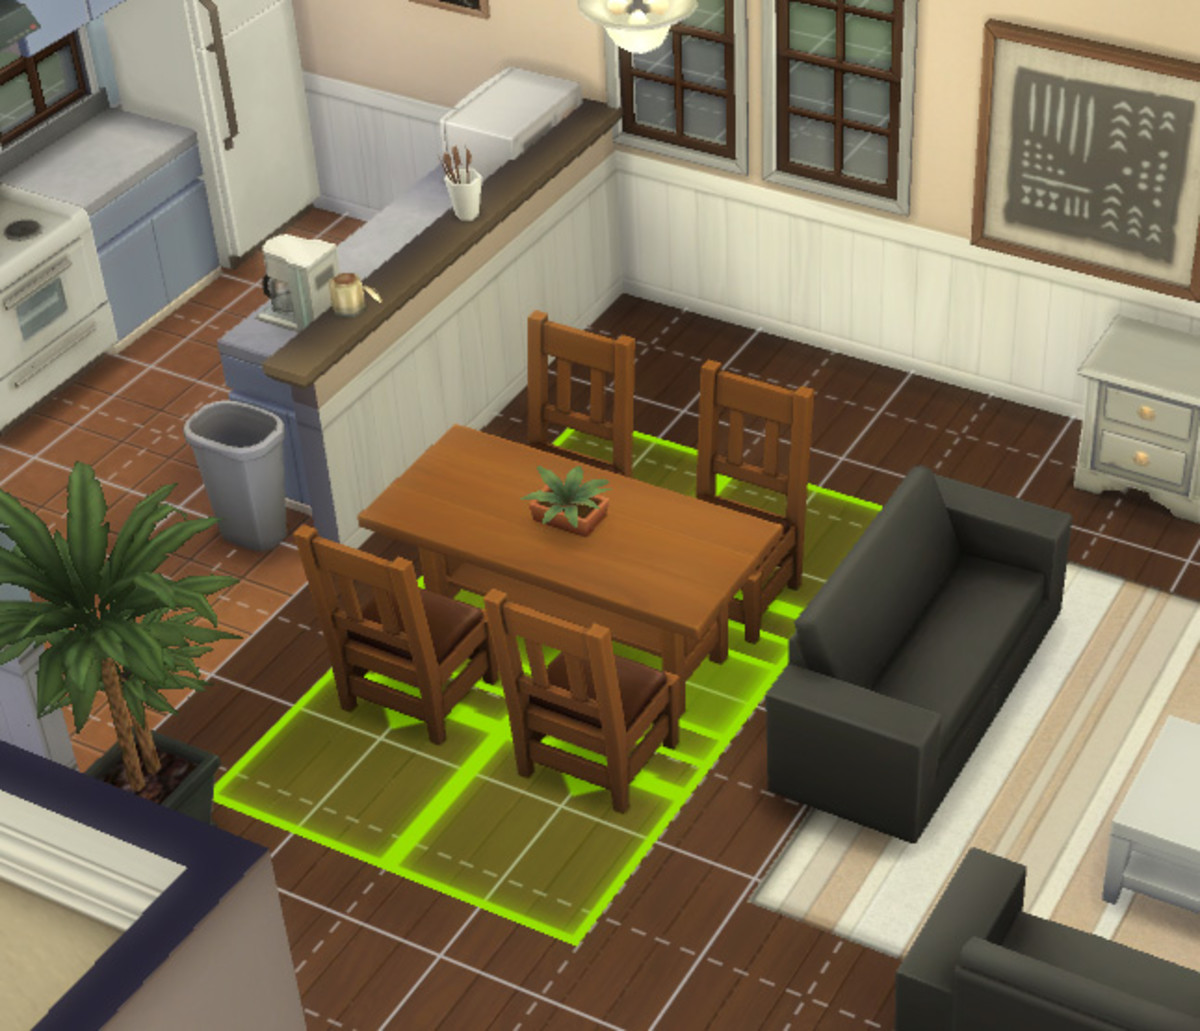 Being able to move items that go together in one group makes things easier. The green highlighted grid shows the space the items need for Sims to properly use them.